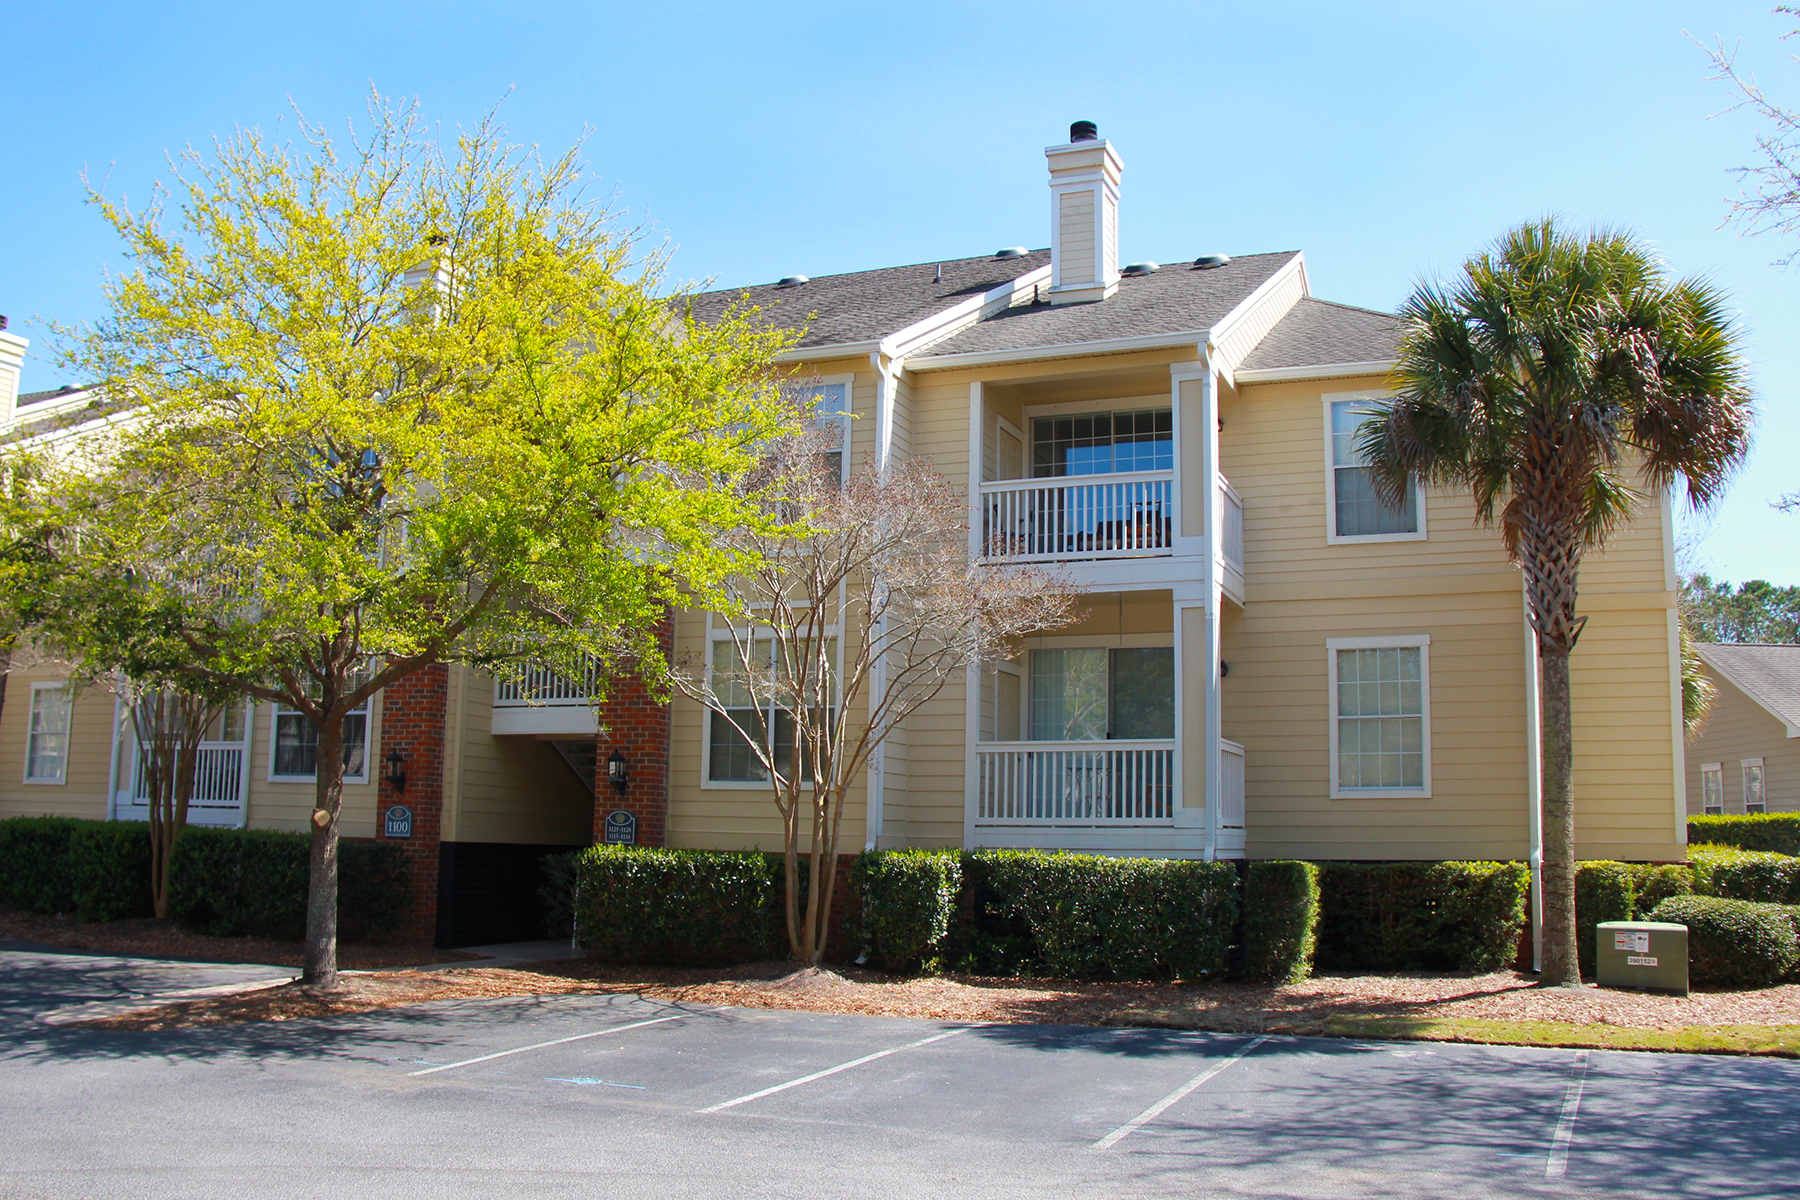 Single Family Home for Sale at 1600 Long Grove Drive 1600 Long Grove Drive Unit 1117 Mount Pleasant, South Carolina, 29464 United States